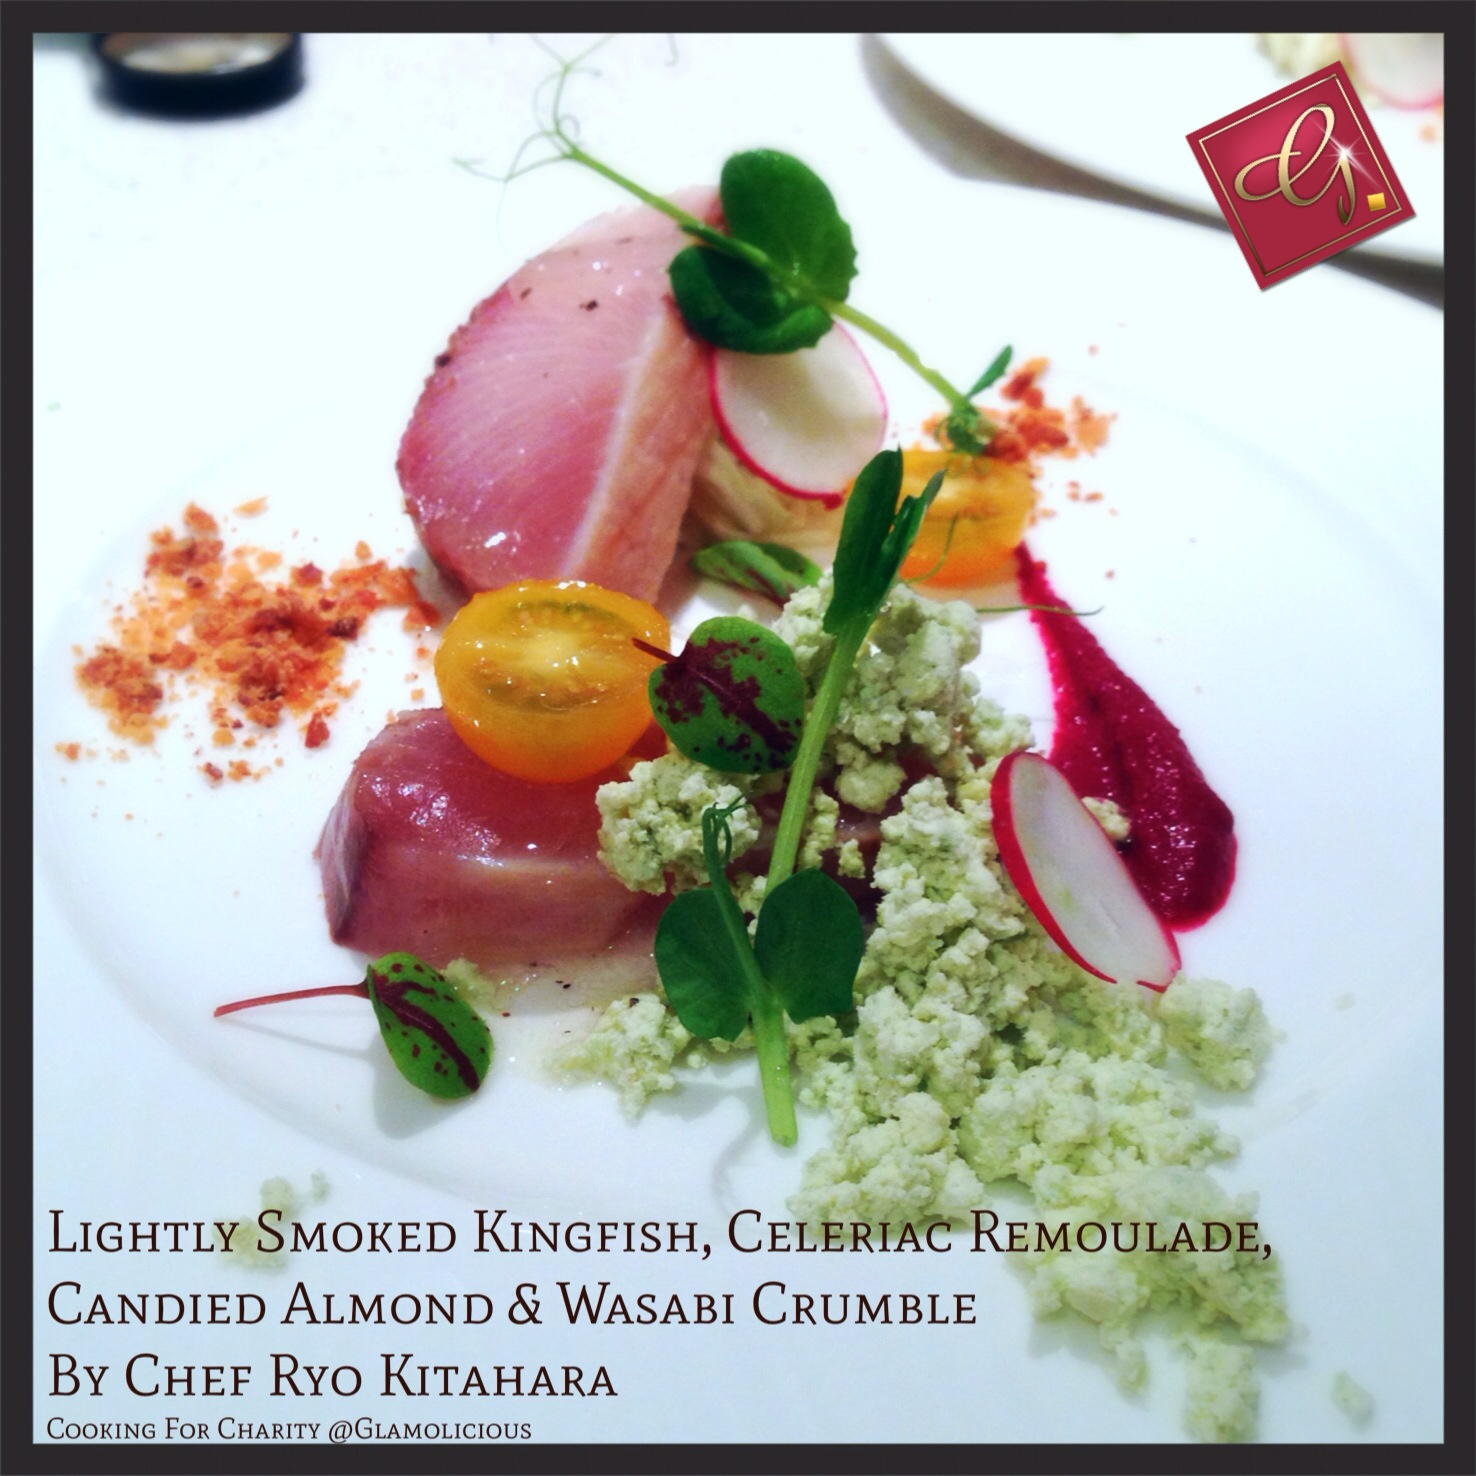 Lightly Smoked Kingfish, Celeriac Remoulade, Candied Almond, Wasabi Crumble by Chef Ryo Kitahara